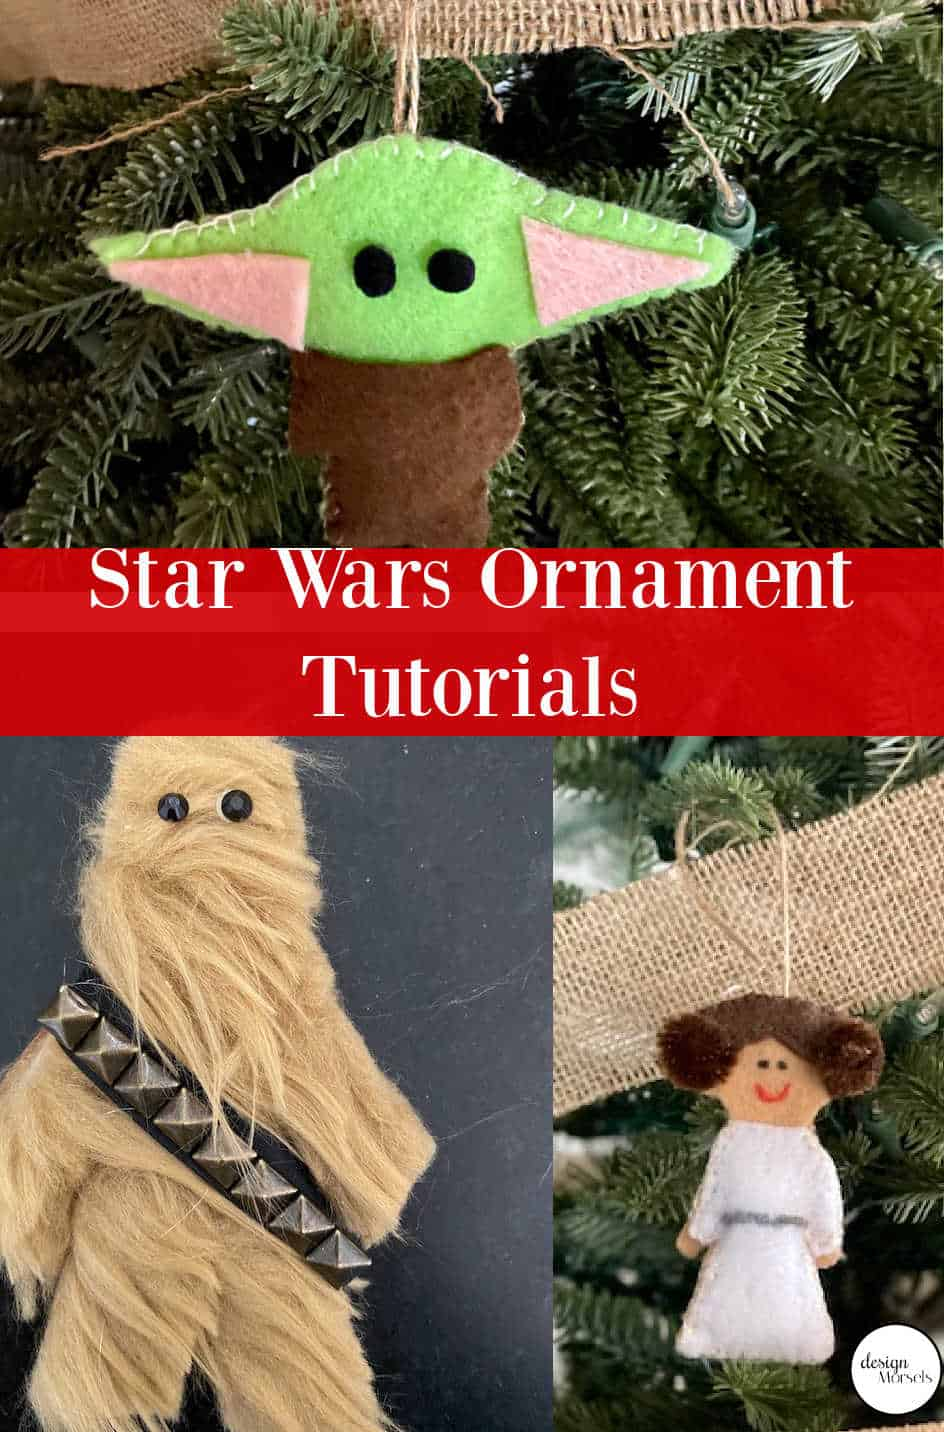 Star Wars Christmas ornament round up